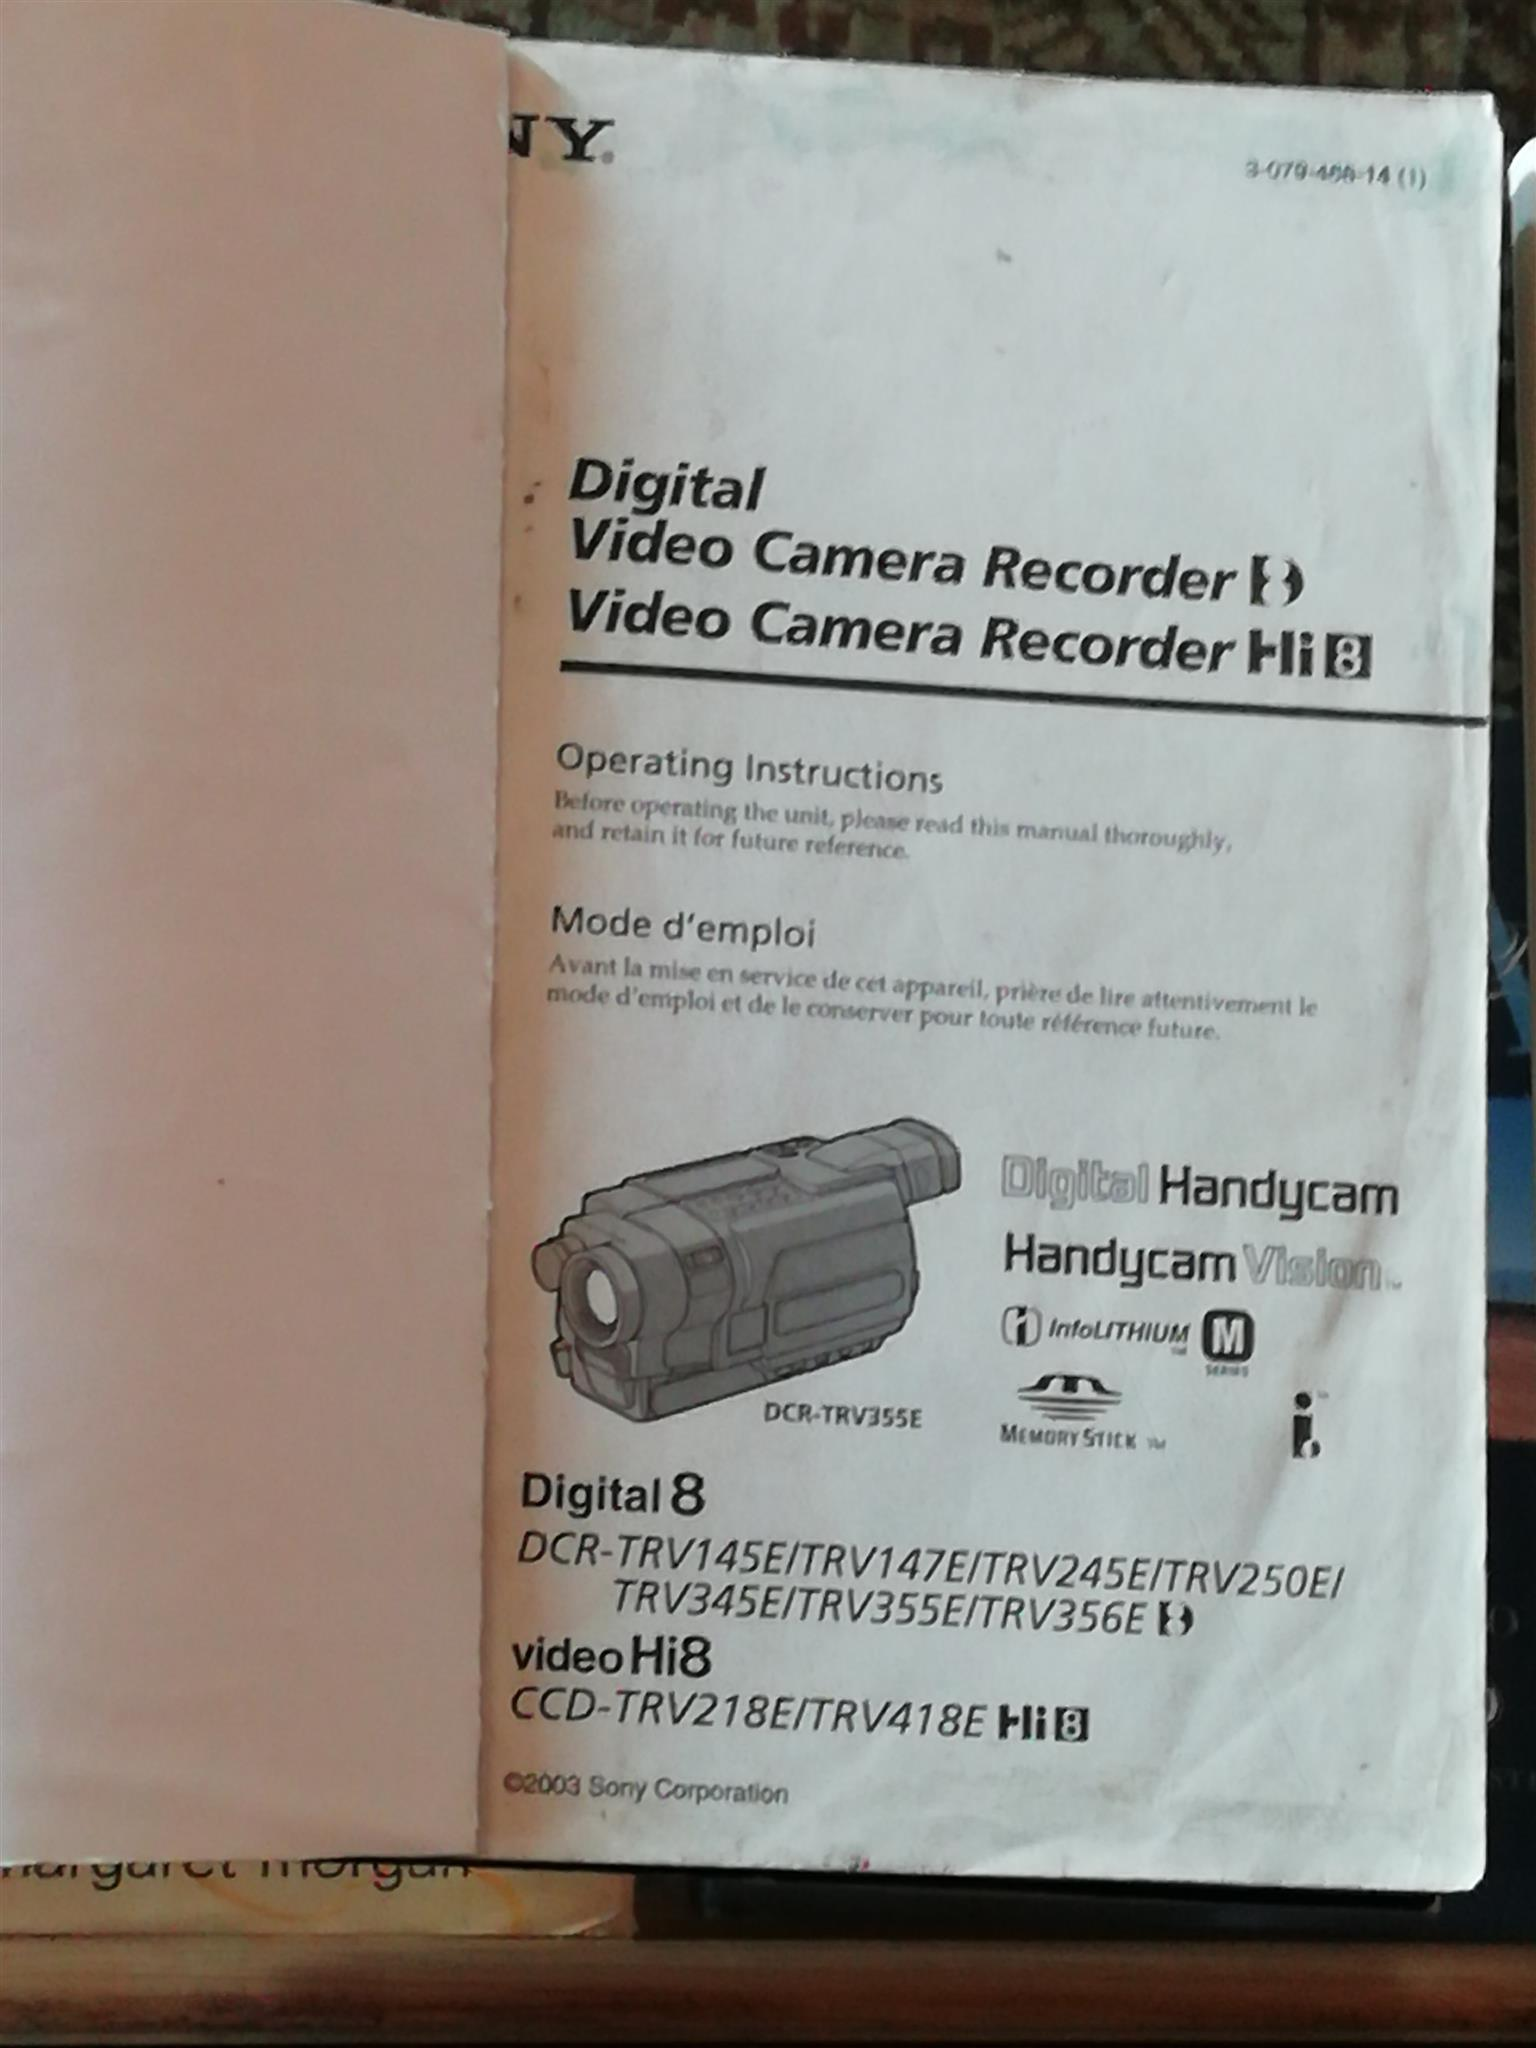 Items for Sony digital video camera recorder DCR-